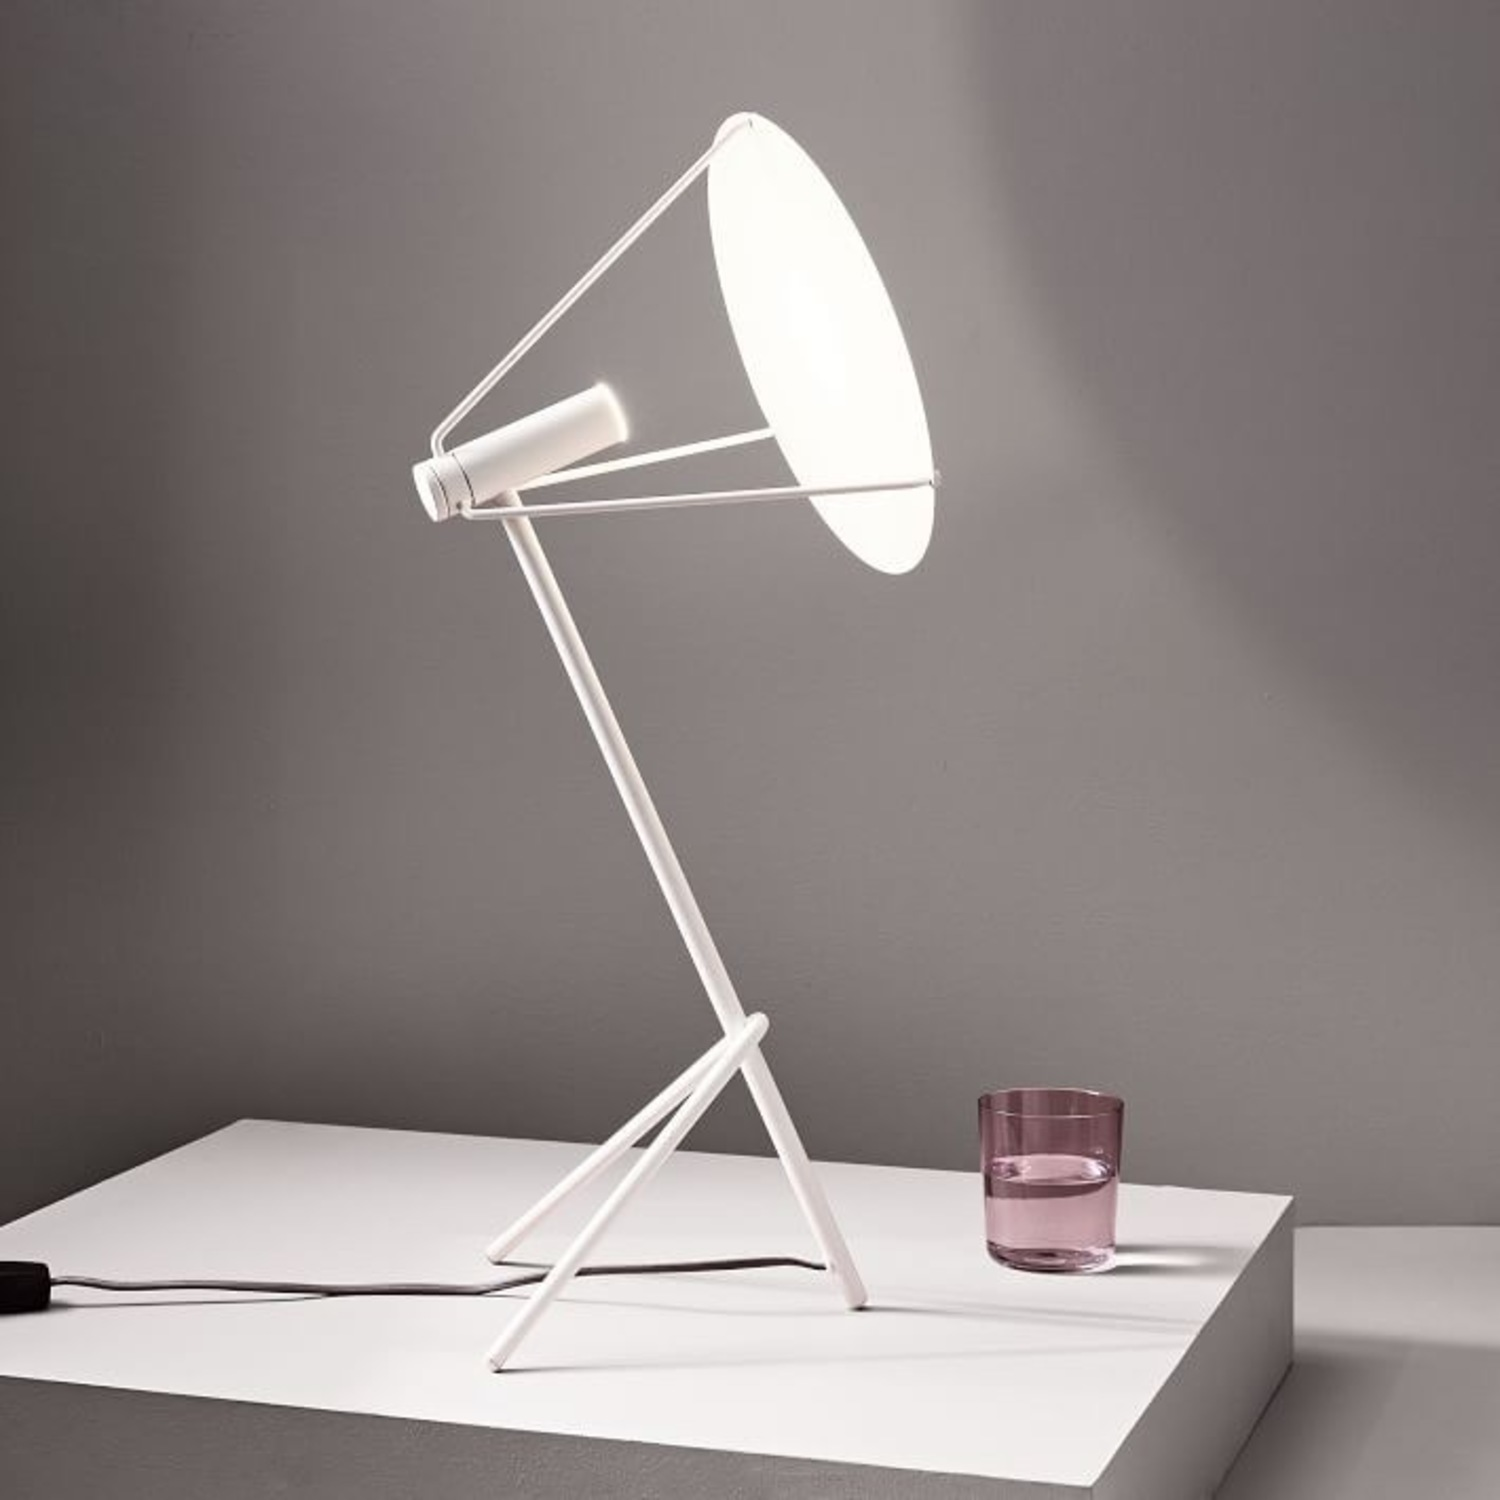 West Elm Powell LED Table Lamp in Satin White - image-2